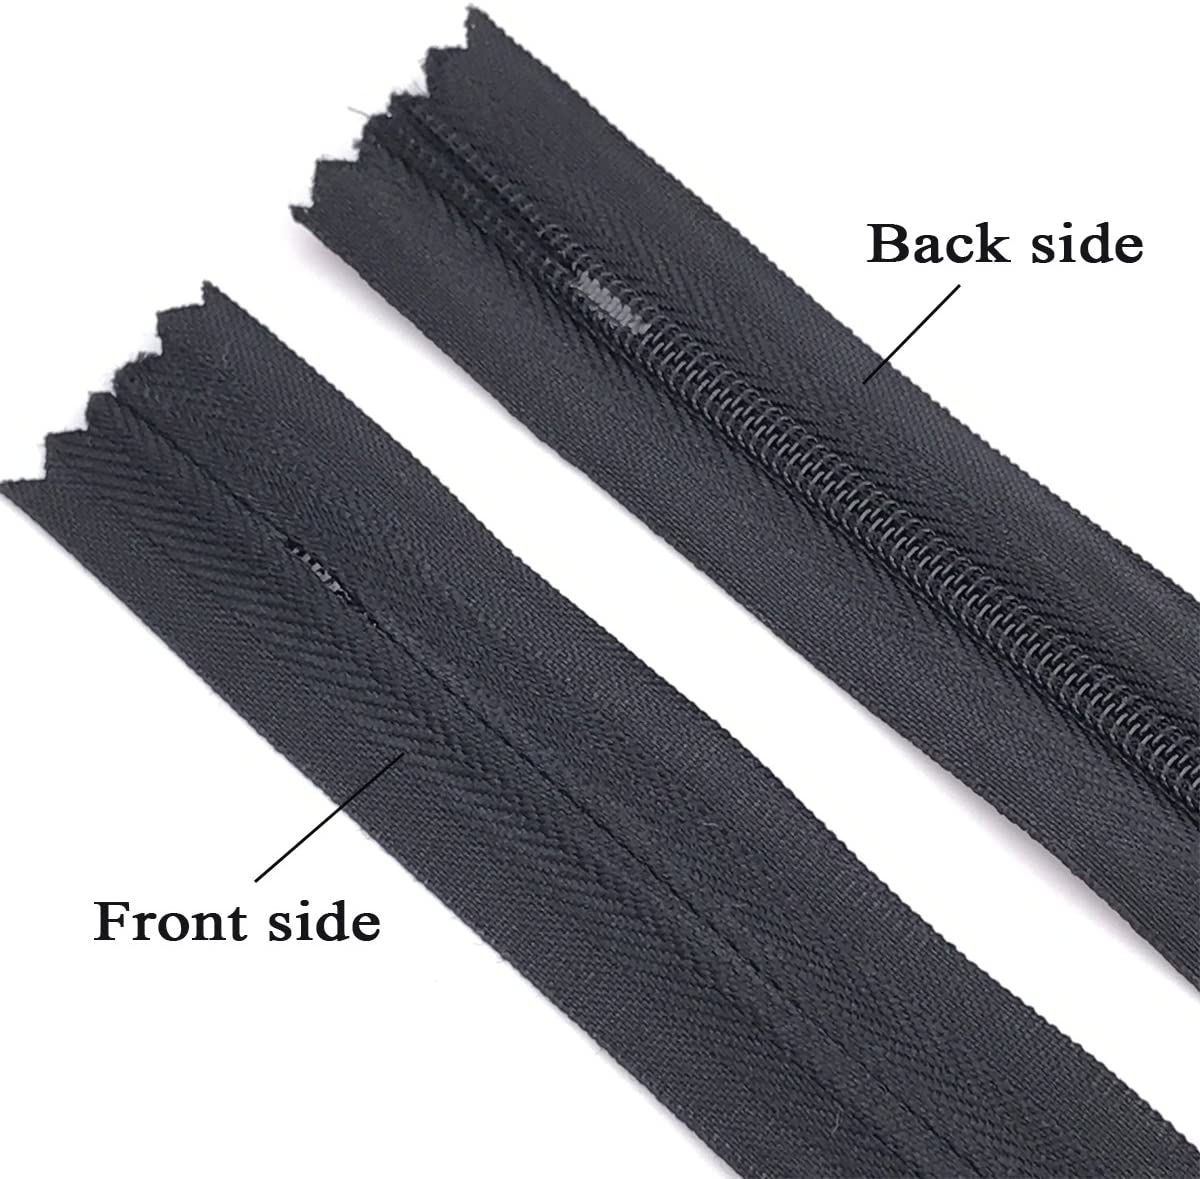 Skirts Sewing Craft Pillows 25pcs Nylon Invisible Zippers for Dresses 16 inch, Black